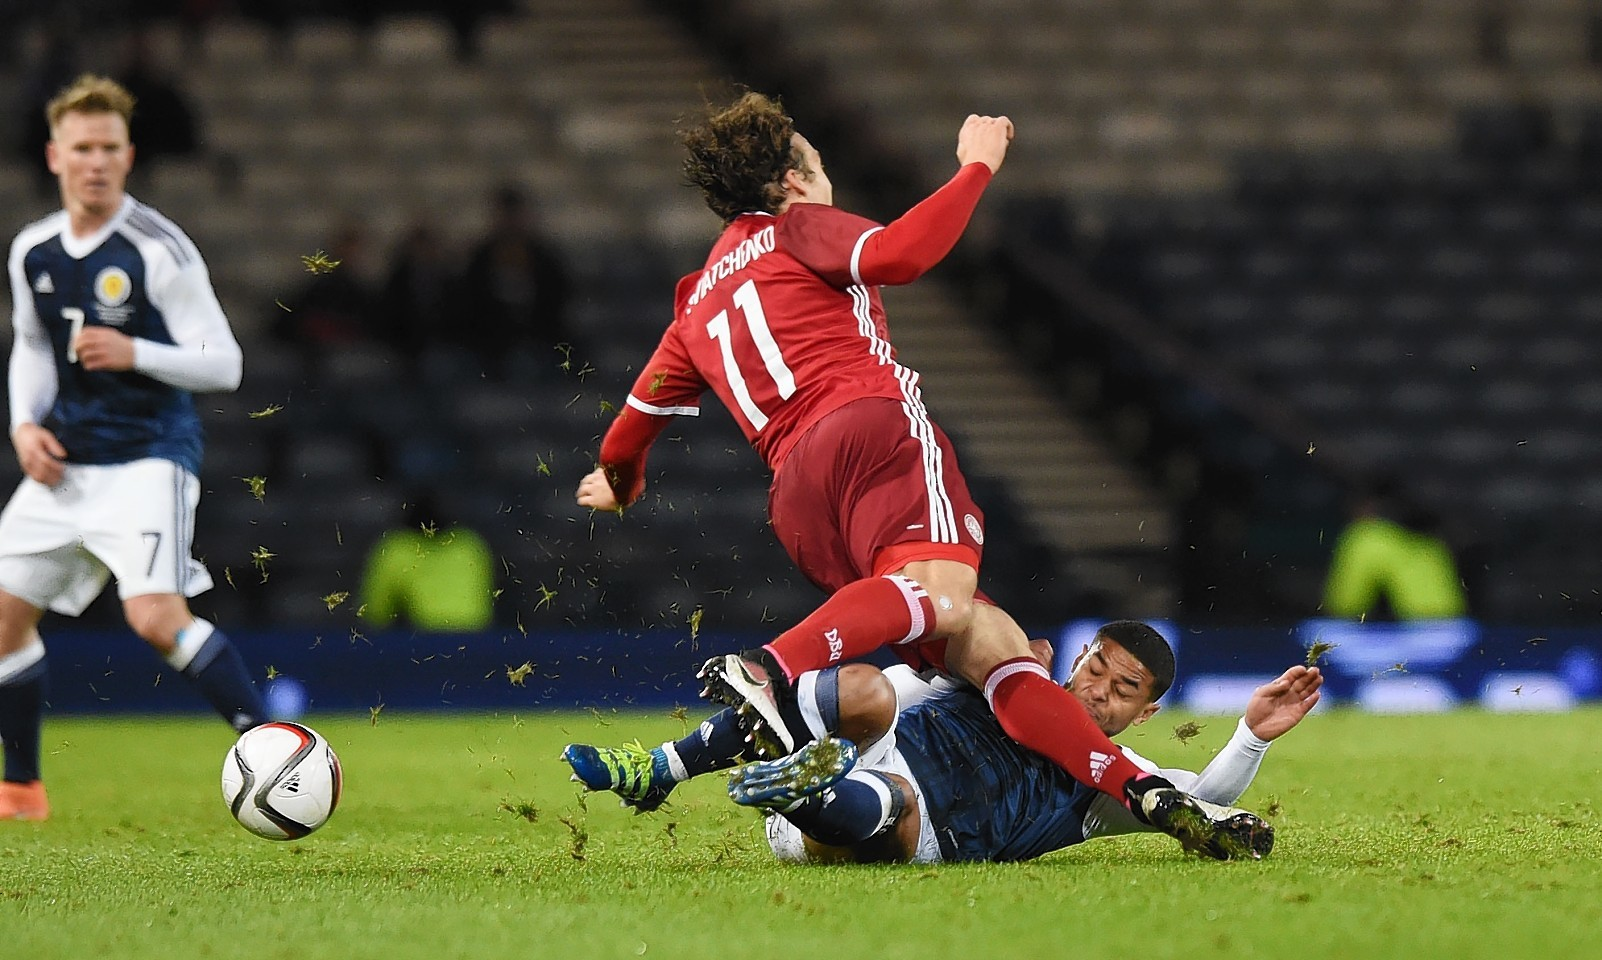 Erik Sviatchenko was floored by Bridcutt's challenge